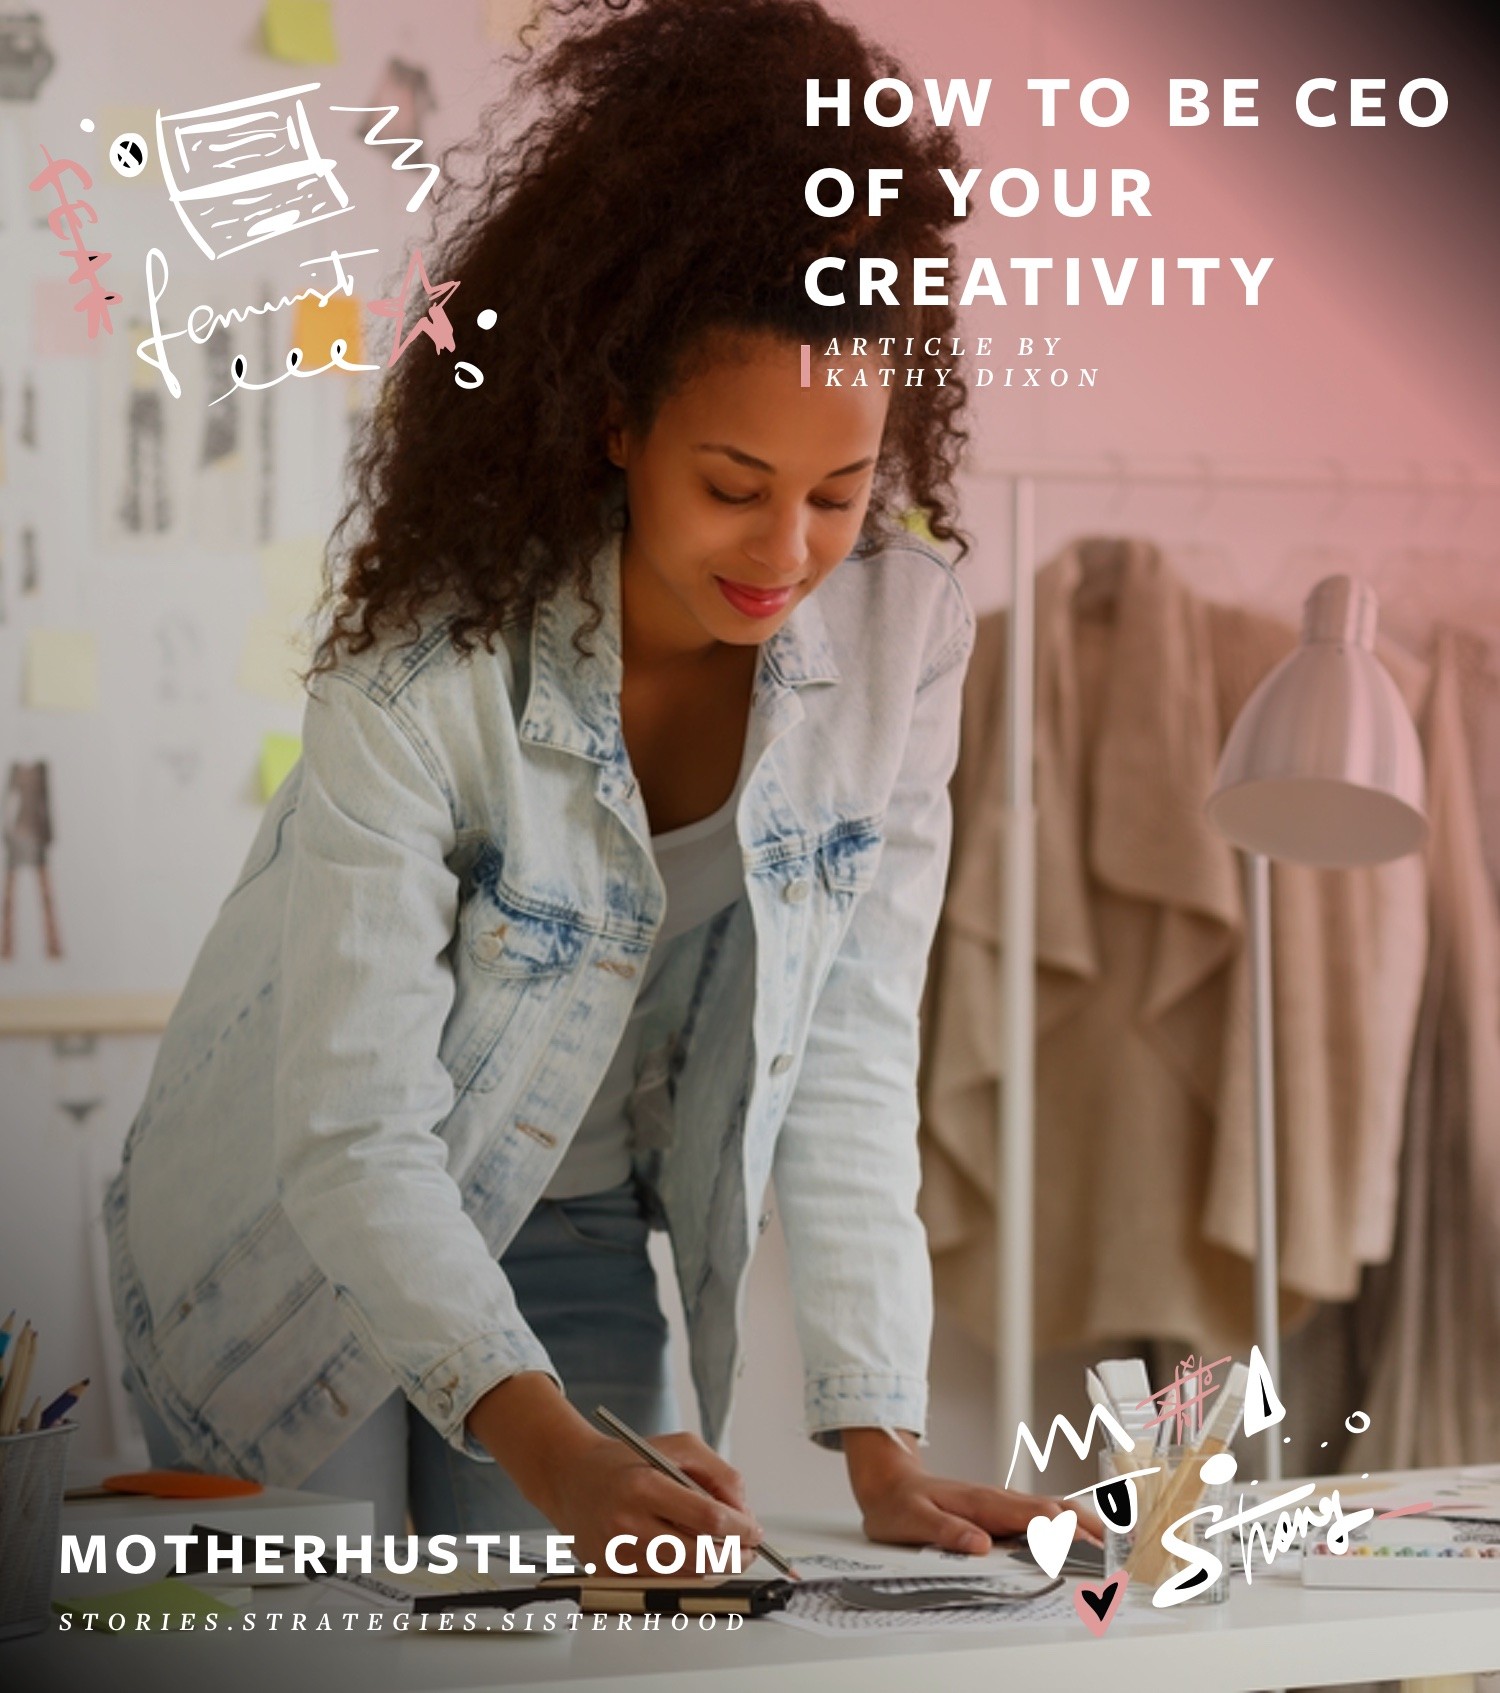 How To Be CEO Of Your Creativity - Kathy Dixon MotherHustle